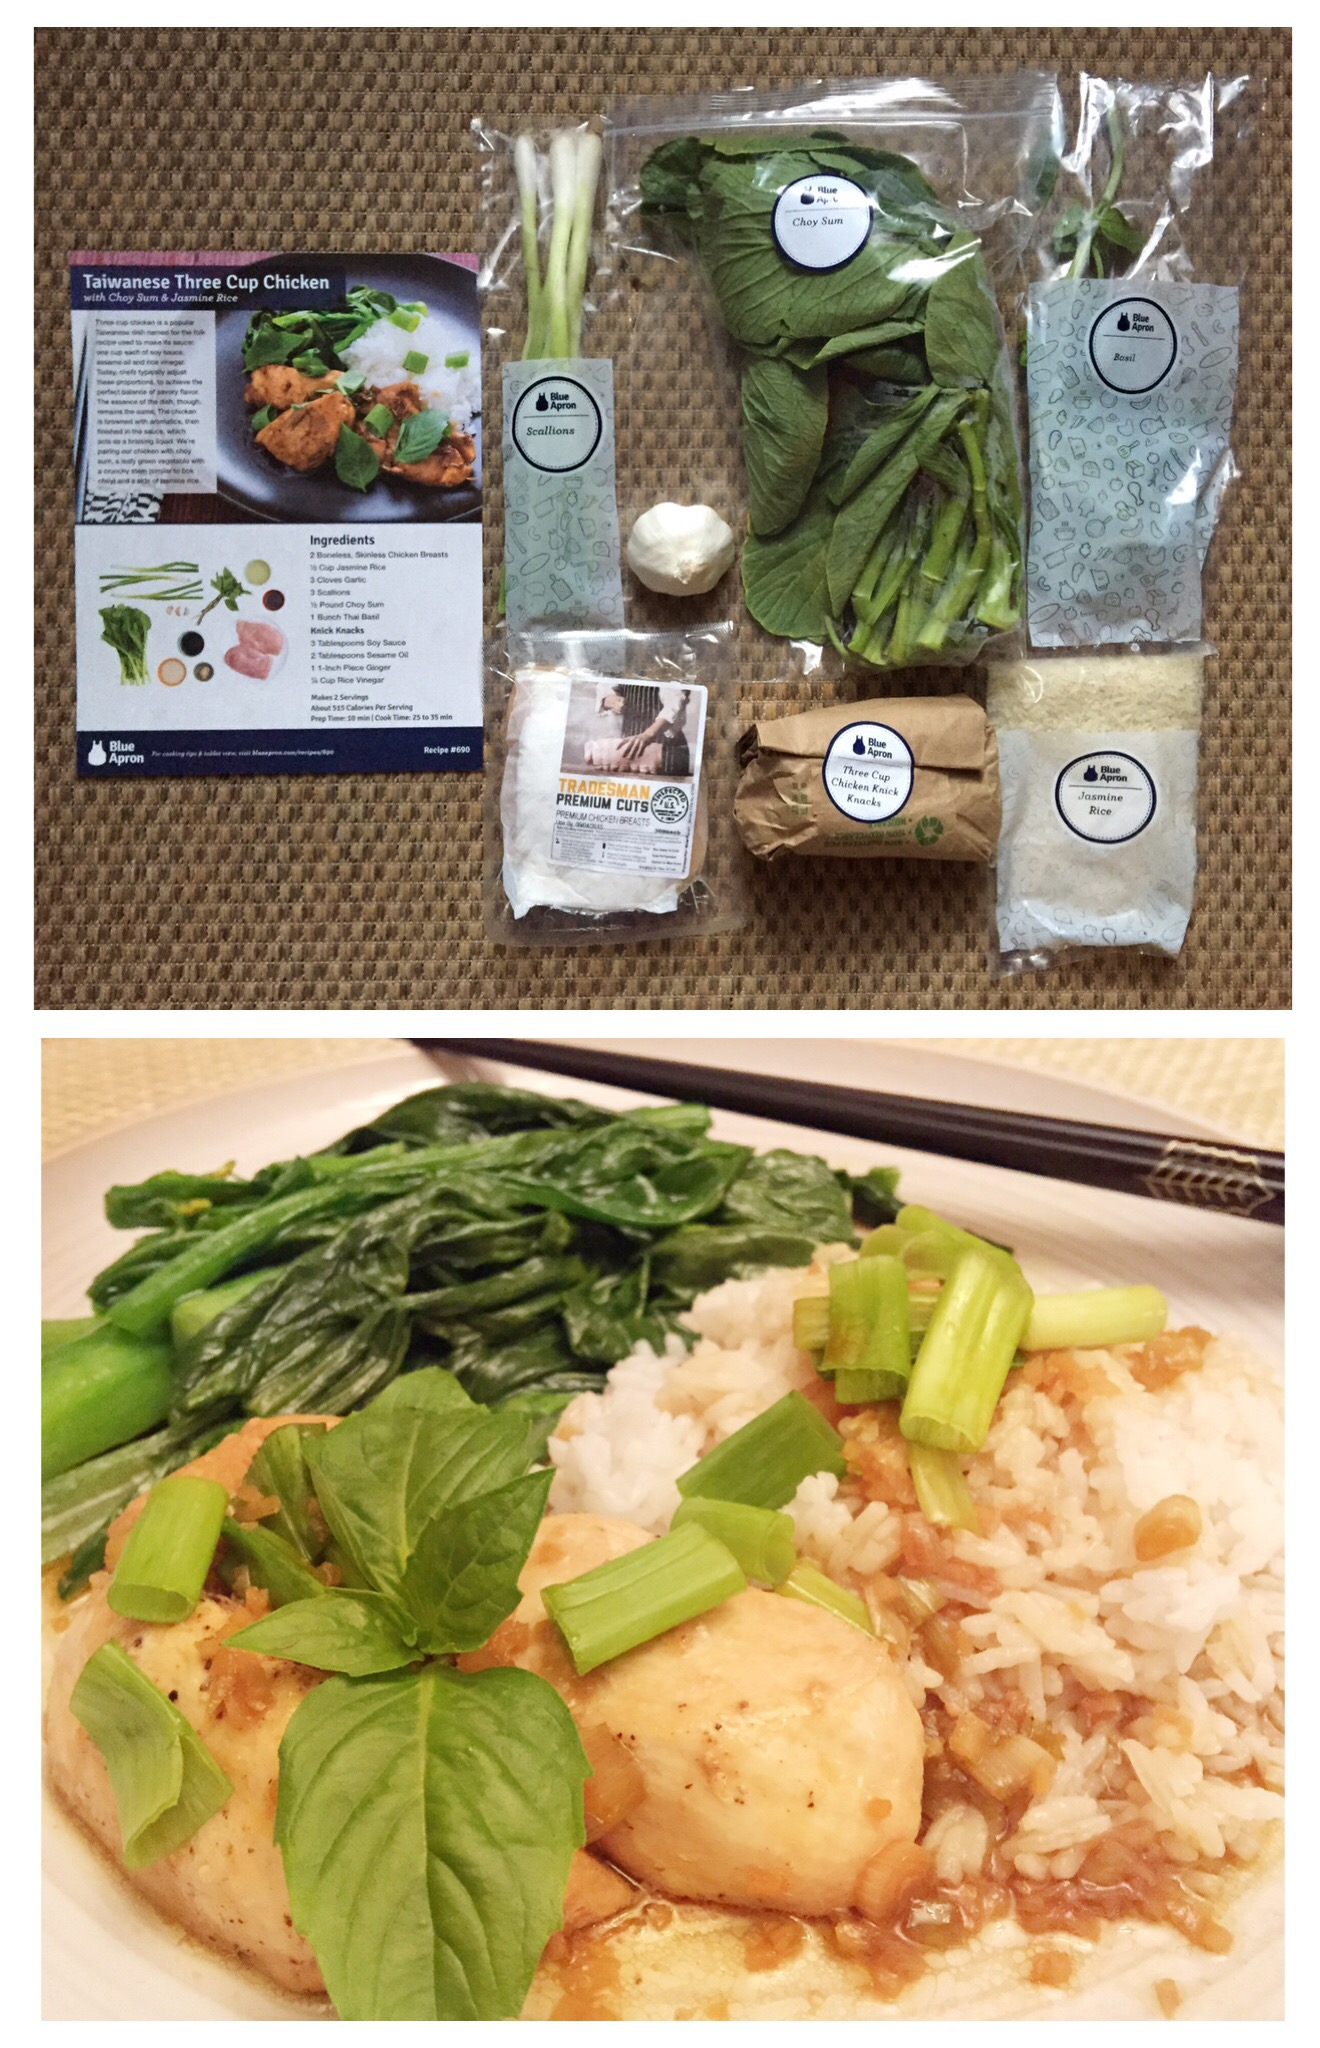 Blue apron yellow grits - Branching Owls Blue Apron Taiwanese 3 Cup Chicken